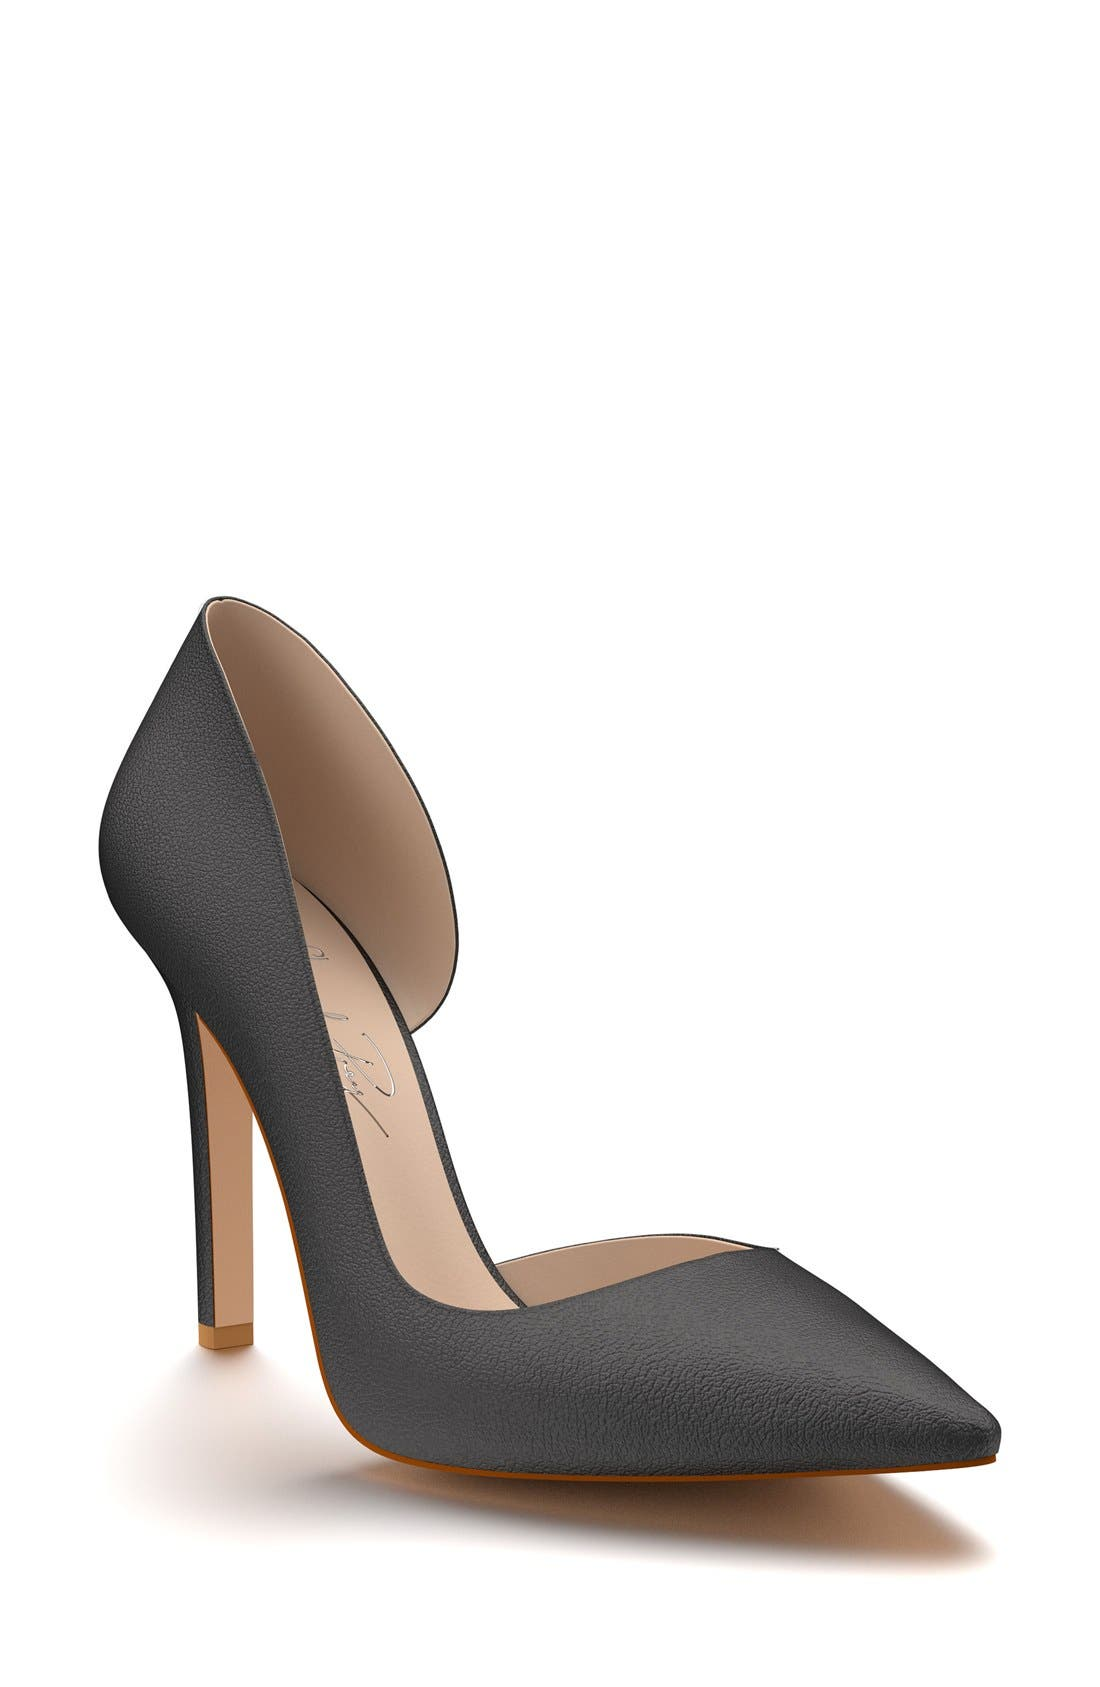 Half d'Orsay Pump,                         Main,                         color, Black Leather